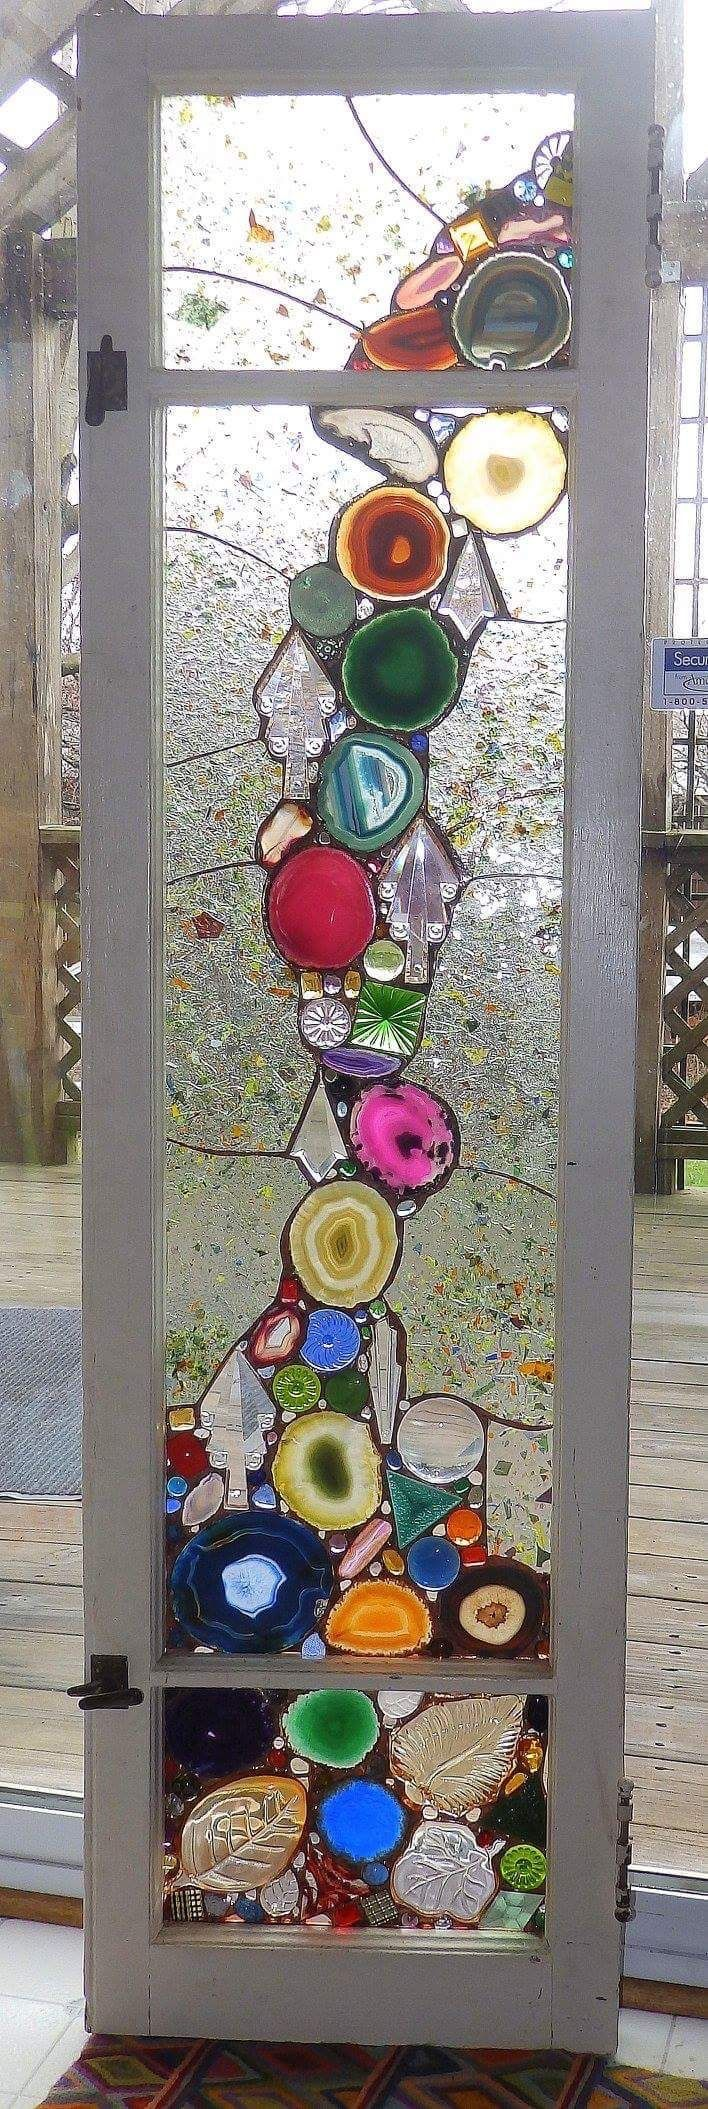 amazing stained glass with agate pieces - artist unknown - couldn't find source